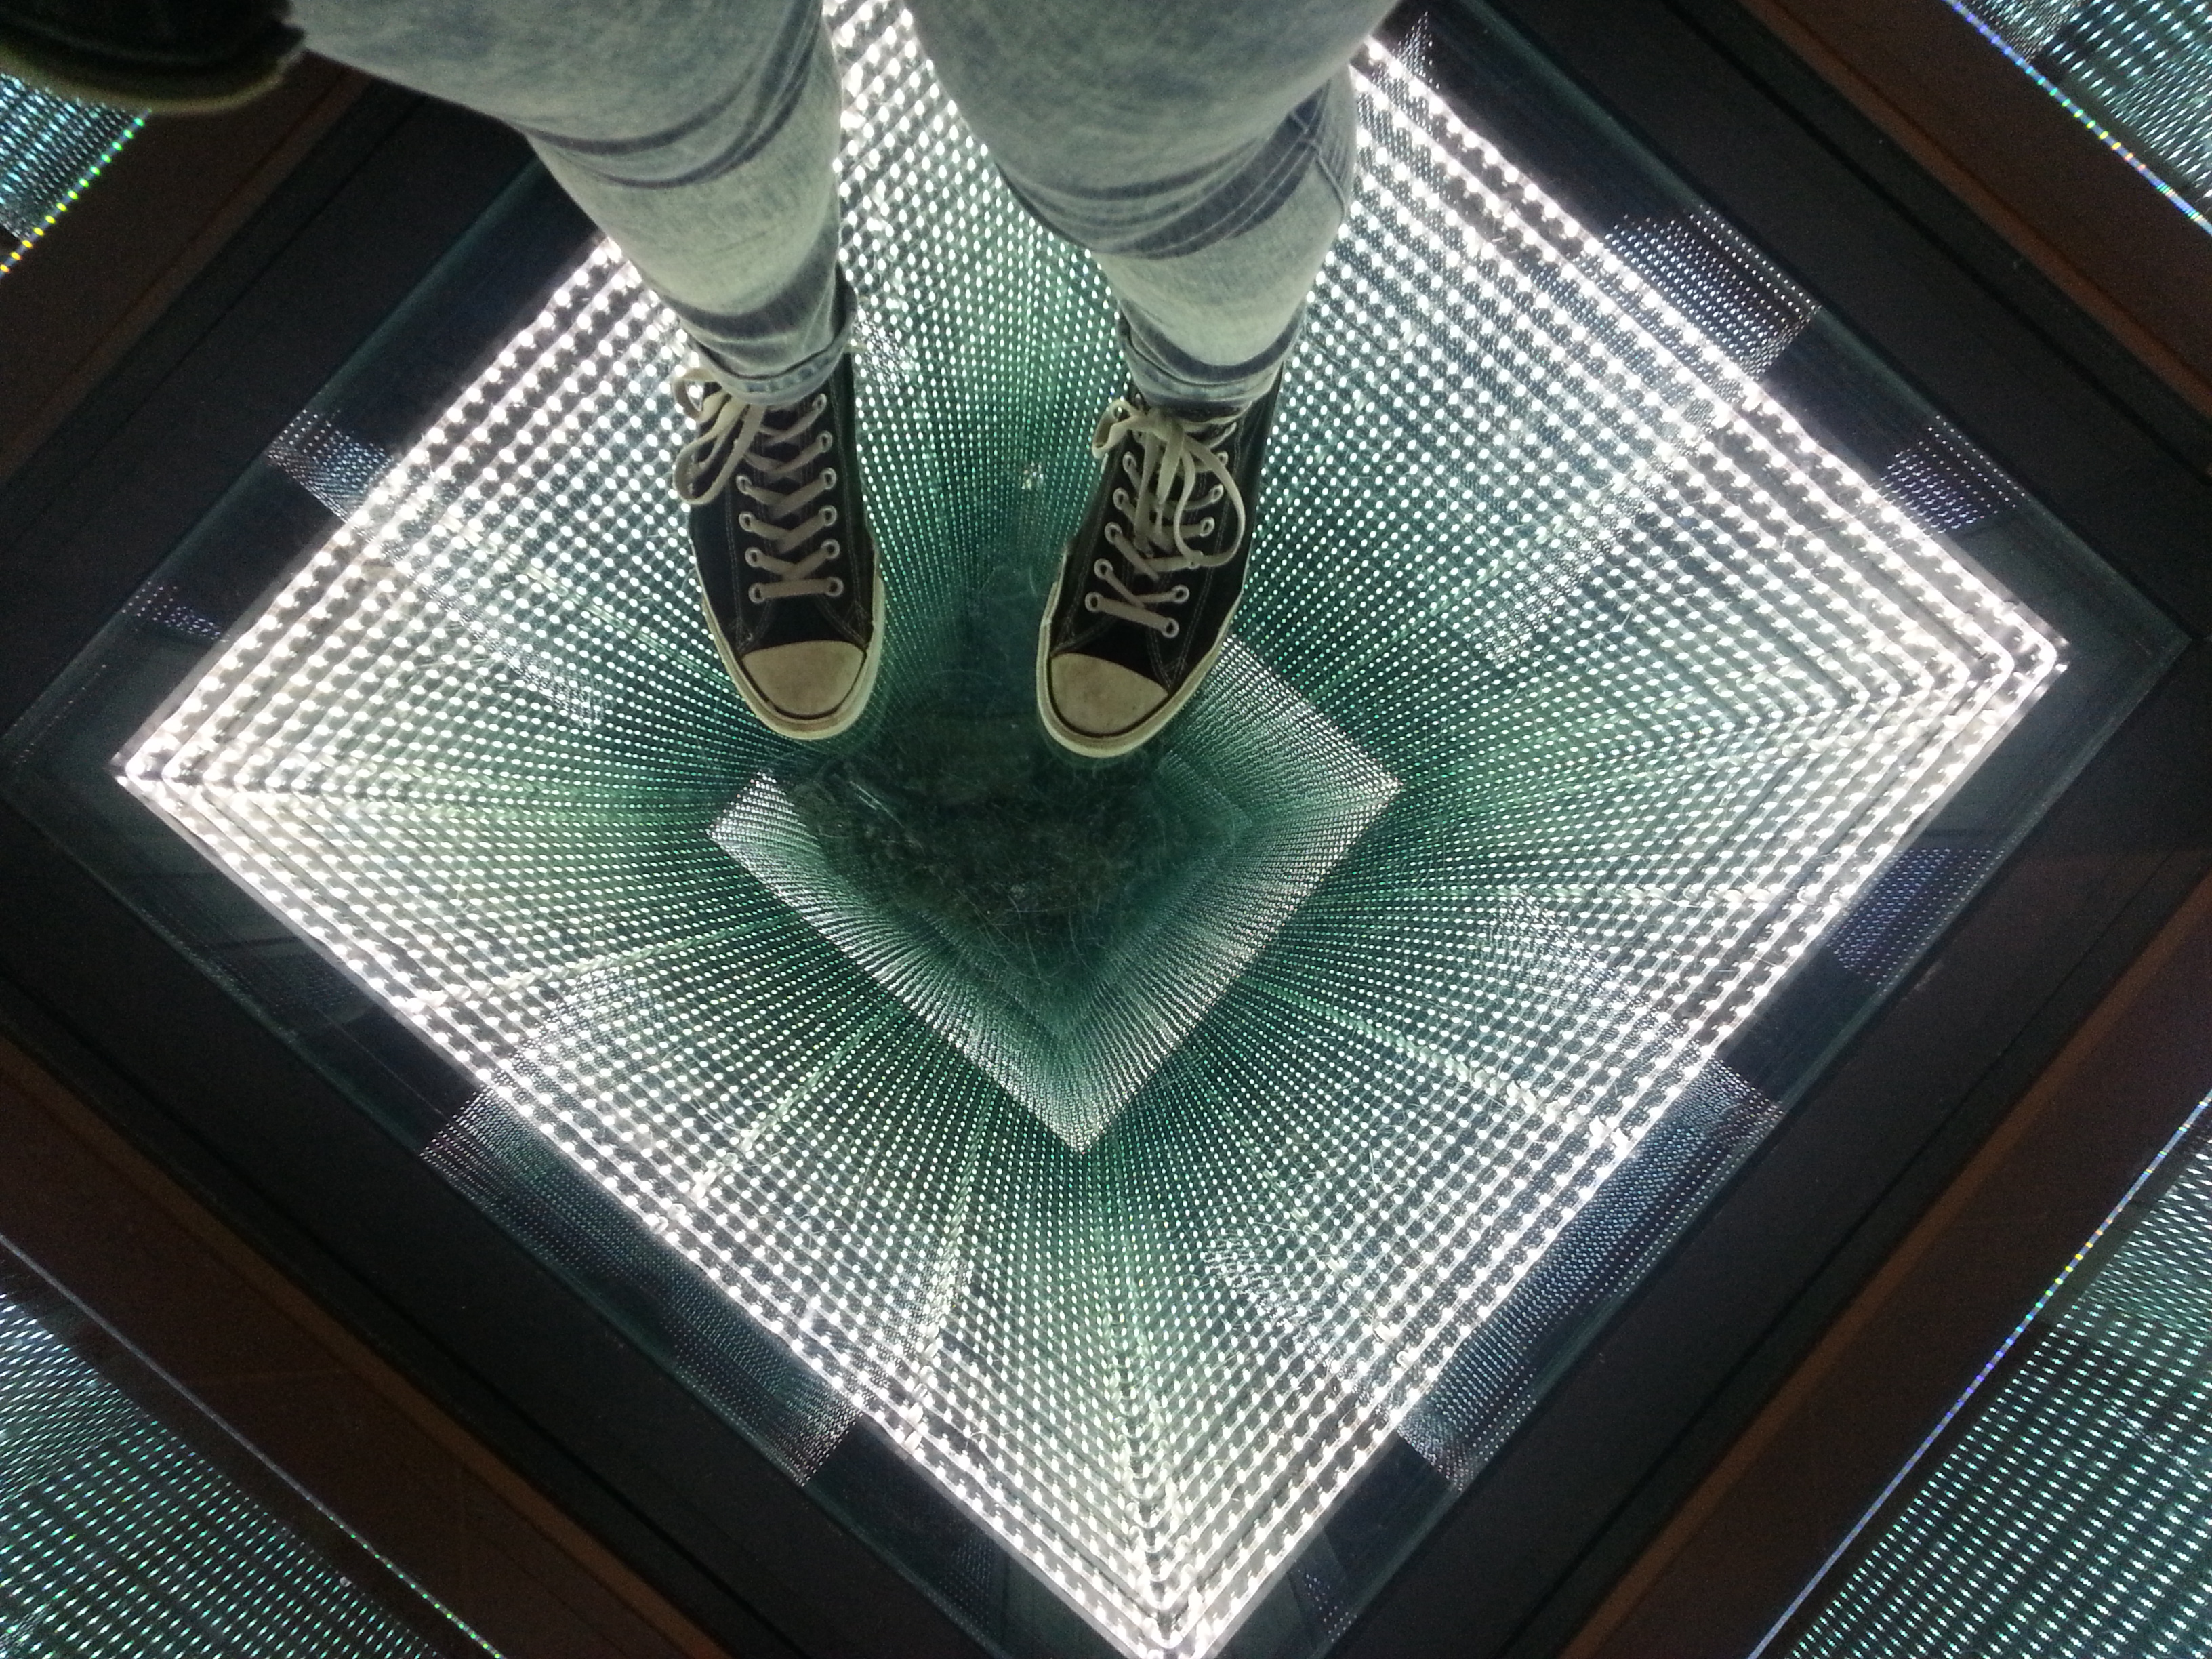 Infinity Mirror Floor Choice Image - home furniture designs pictures